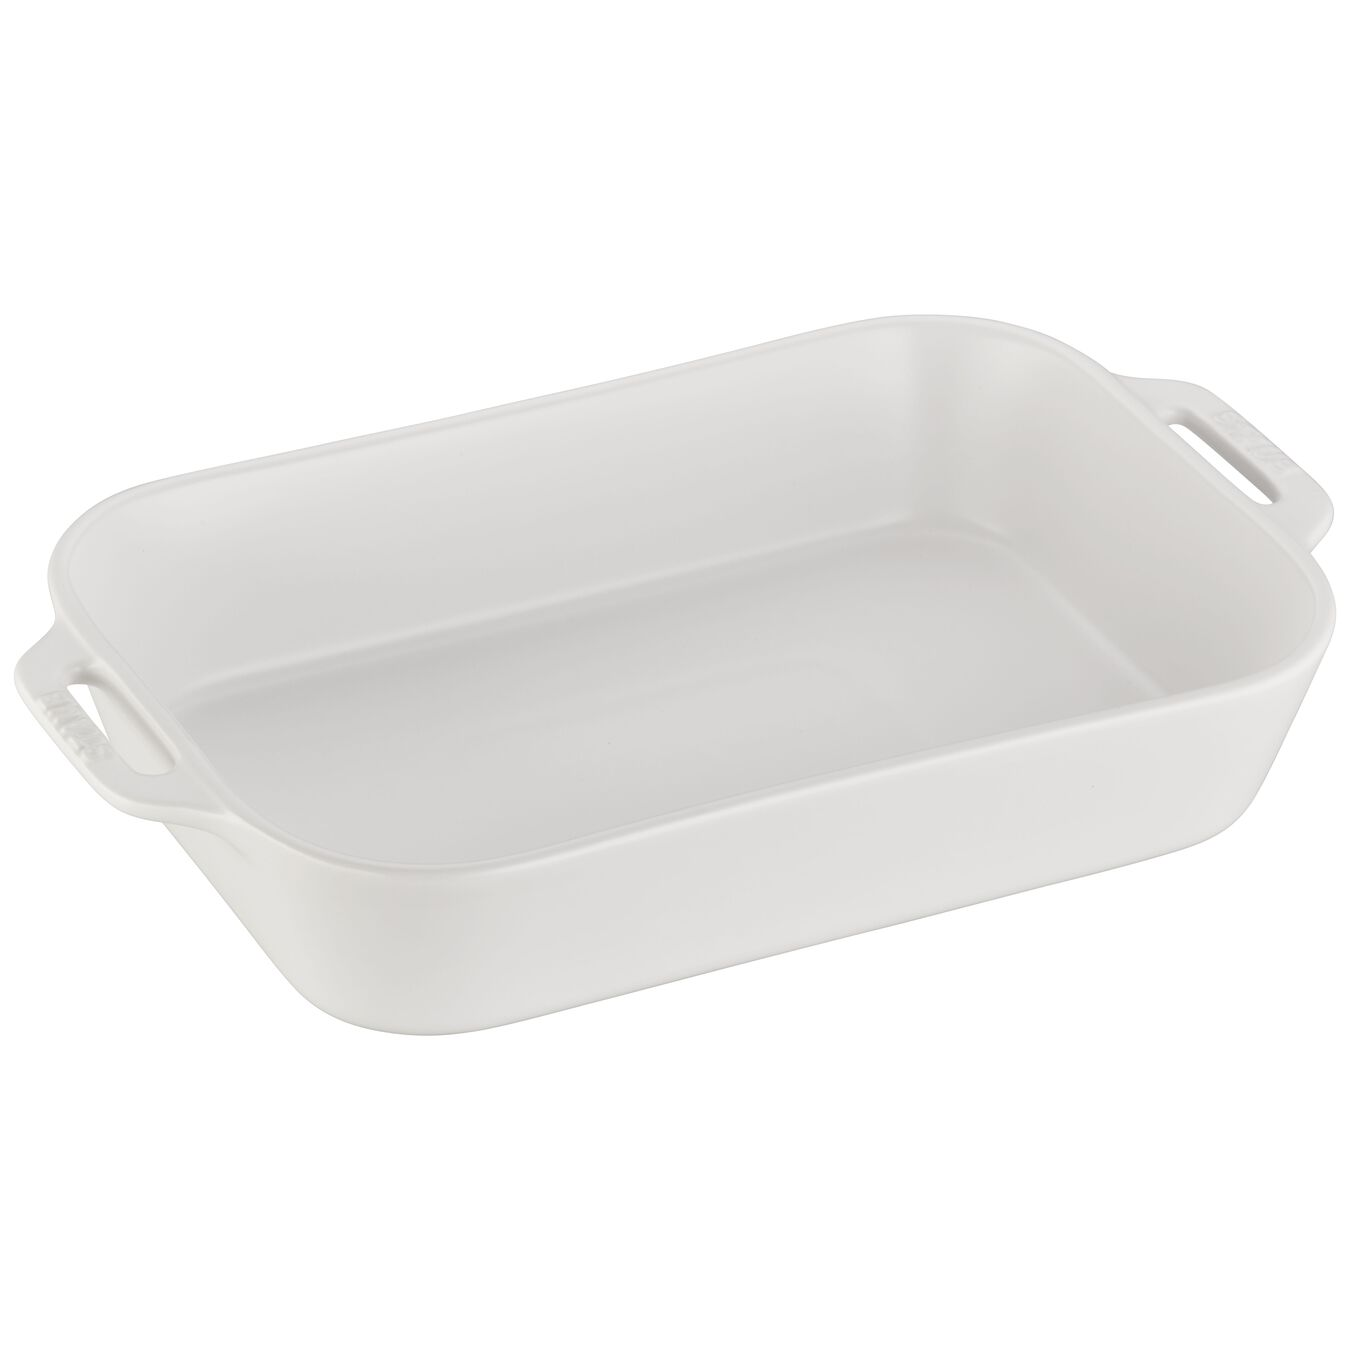 9.5-inch, rectangular, Oven dish, matte white,,large 1